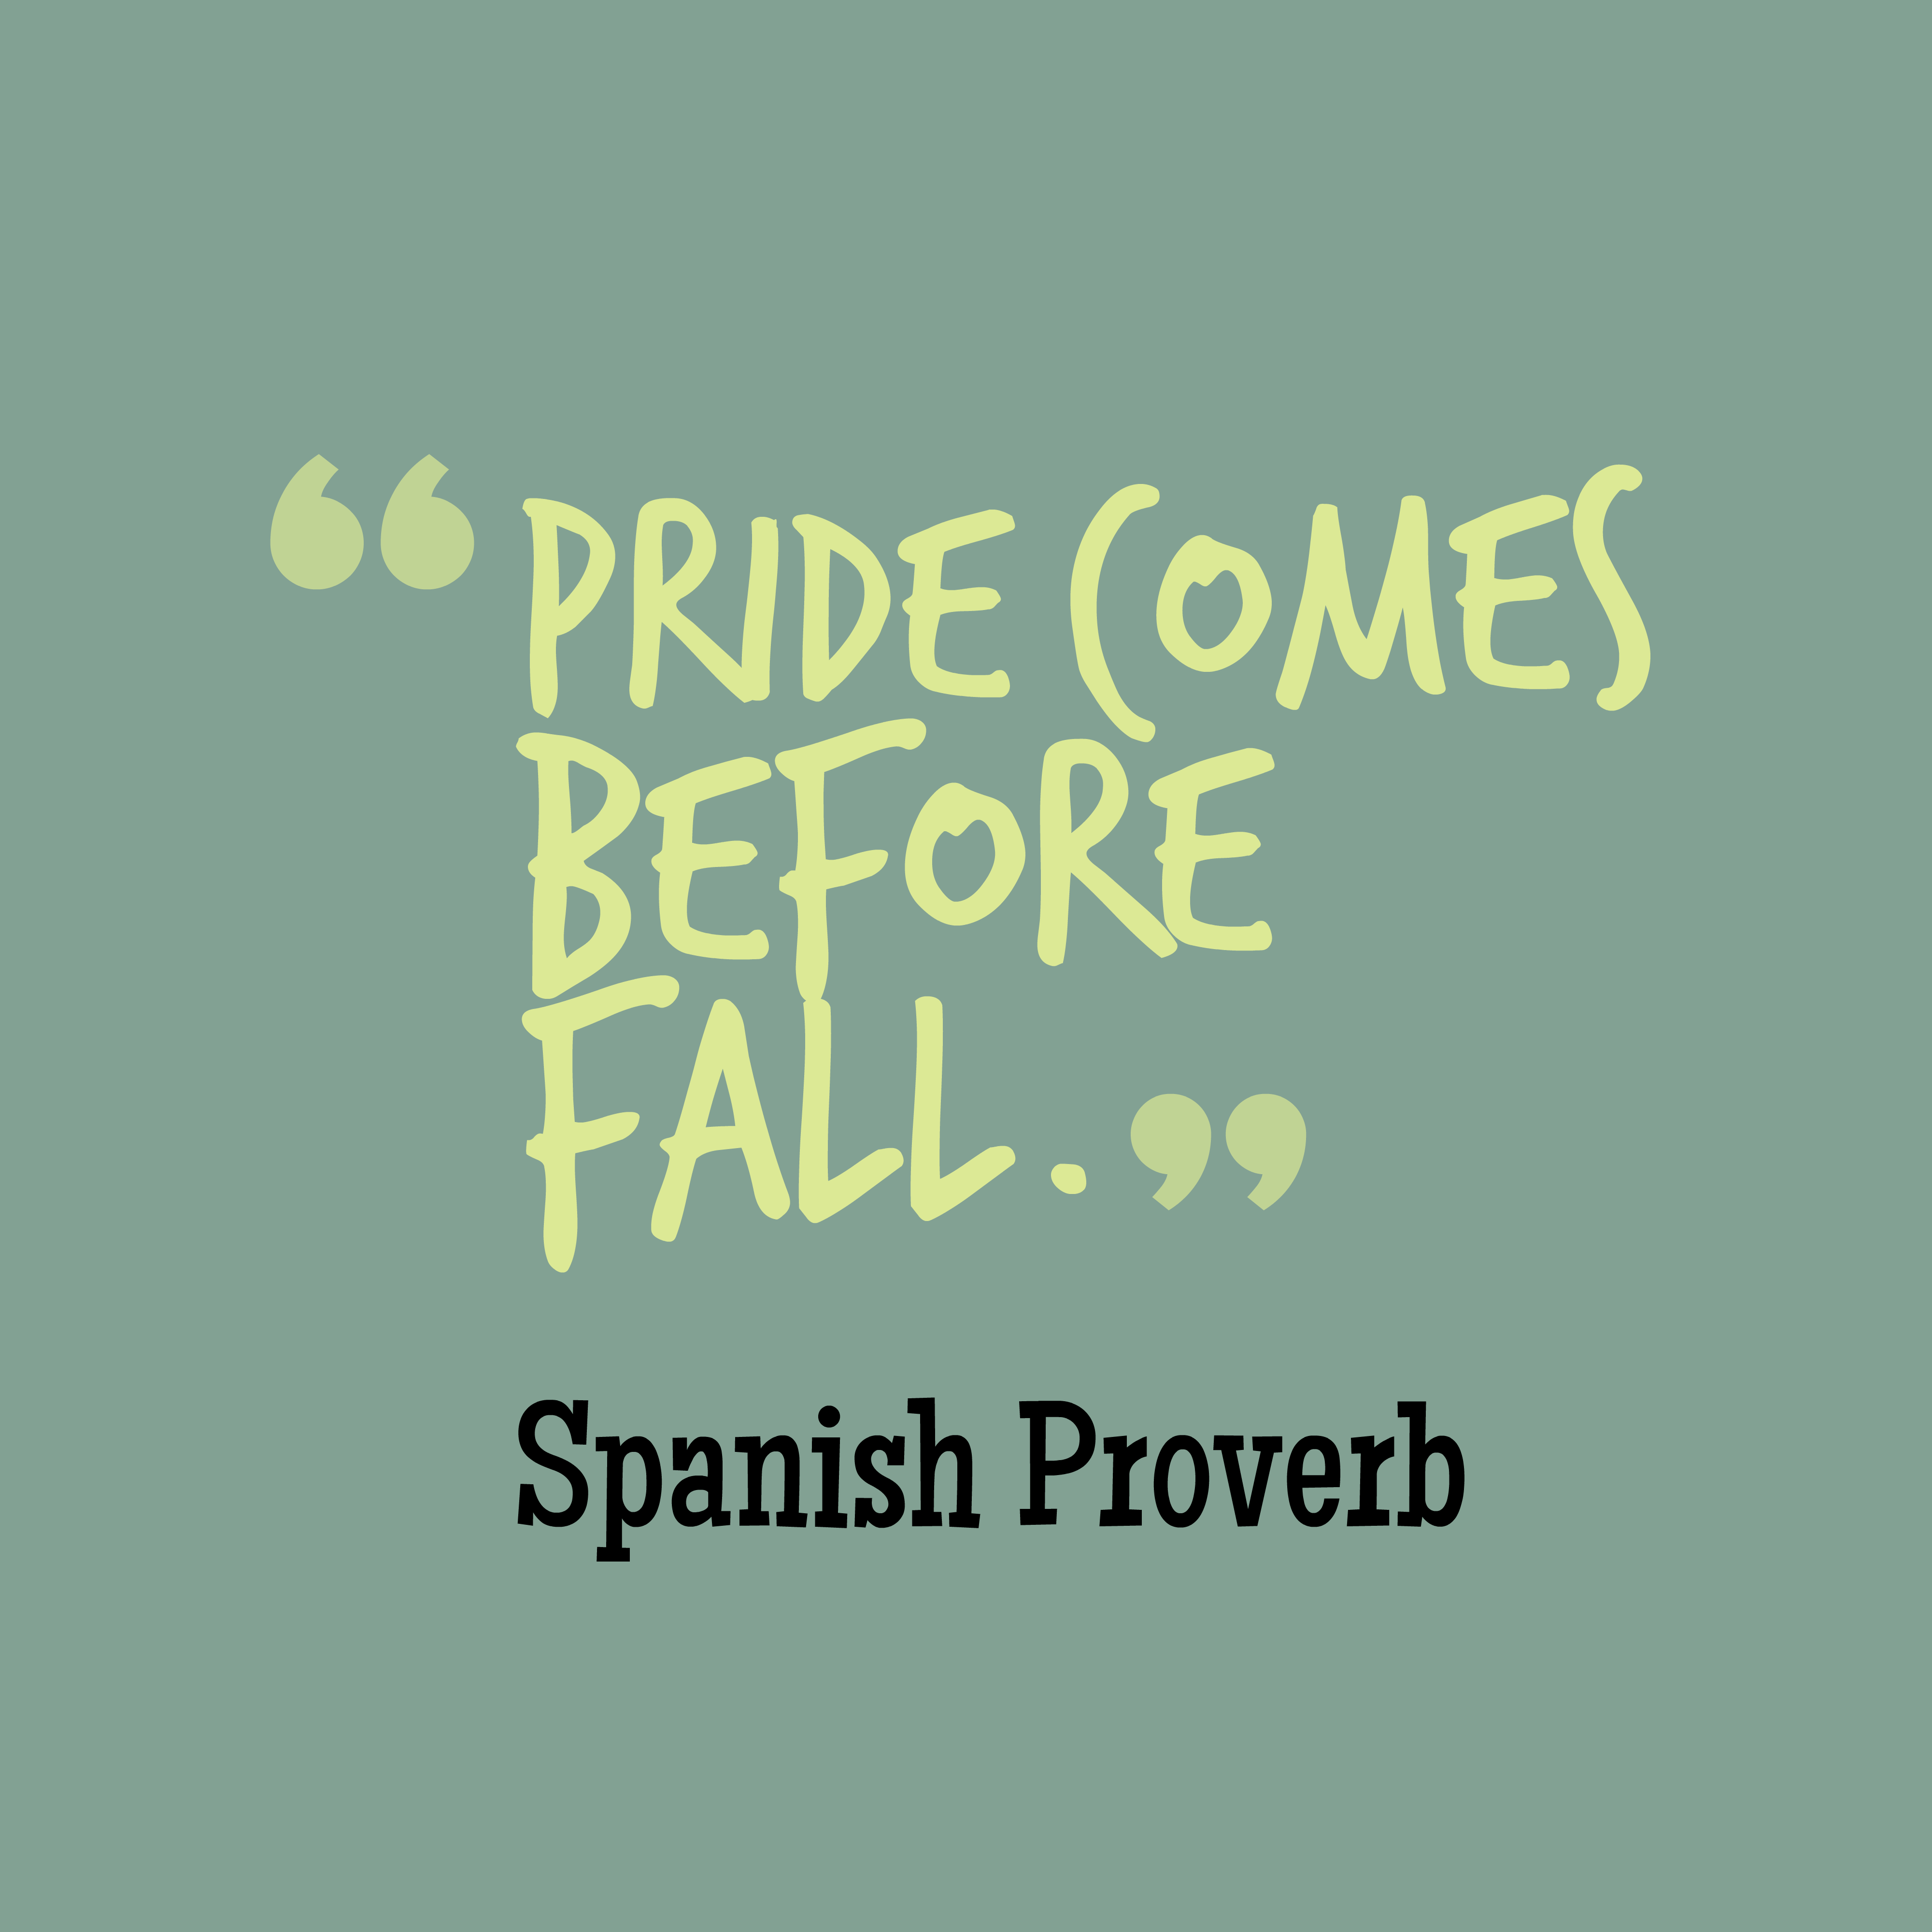 Pride comes before fall.